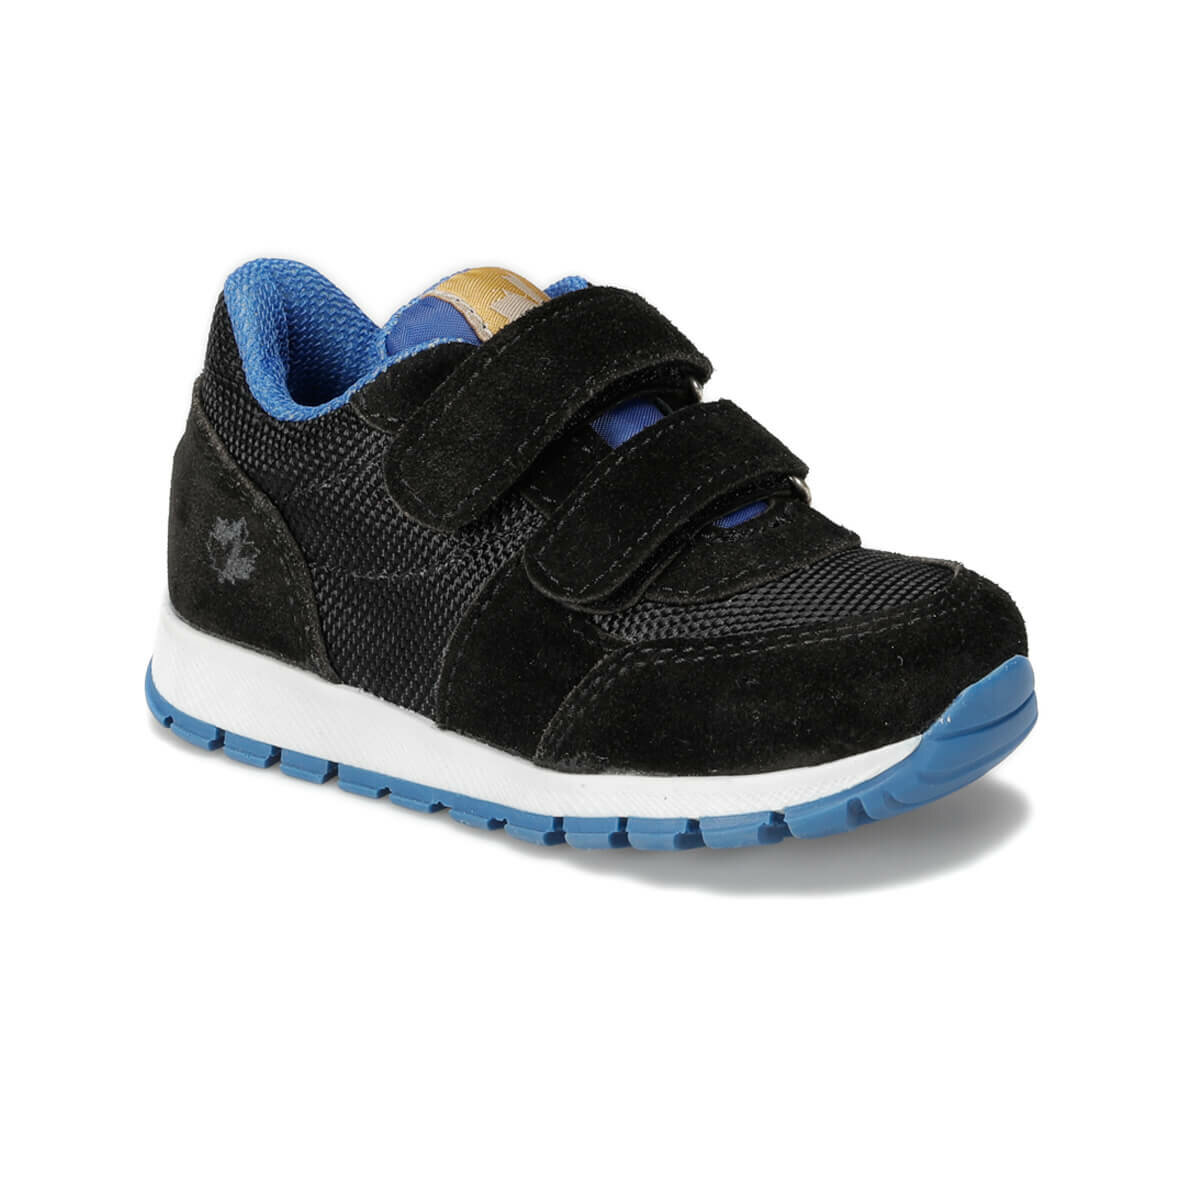 FLO TEXT 9PR Black Male Child Sneaker Shoes LUMBERJACK